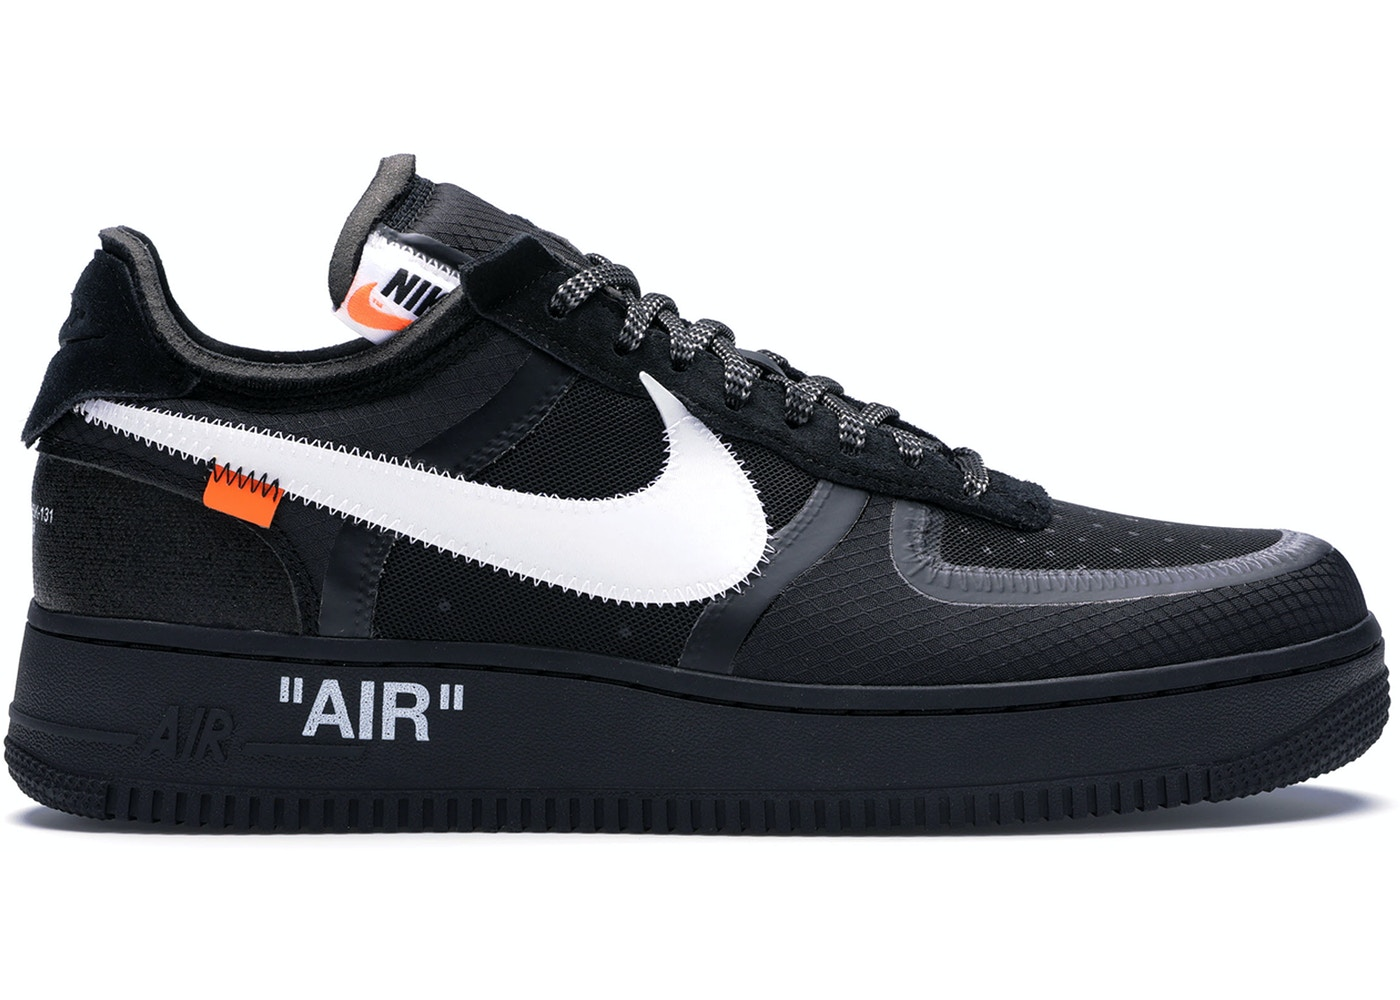 sports shoes 7f827 99a02 Air Force 1 Low Off-White Black White - AO4606-001